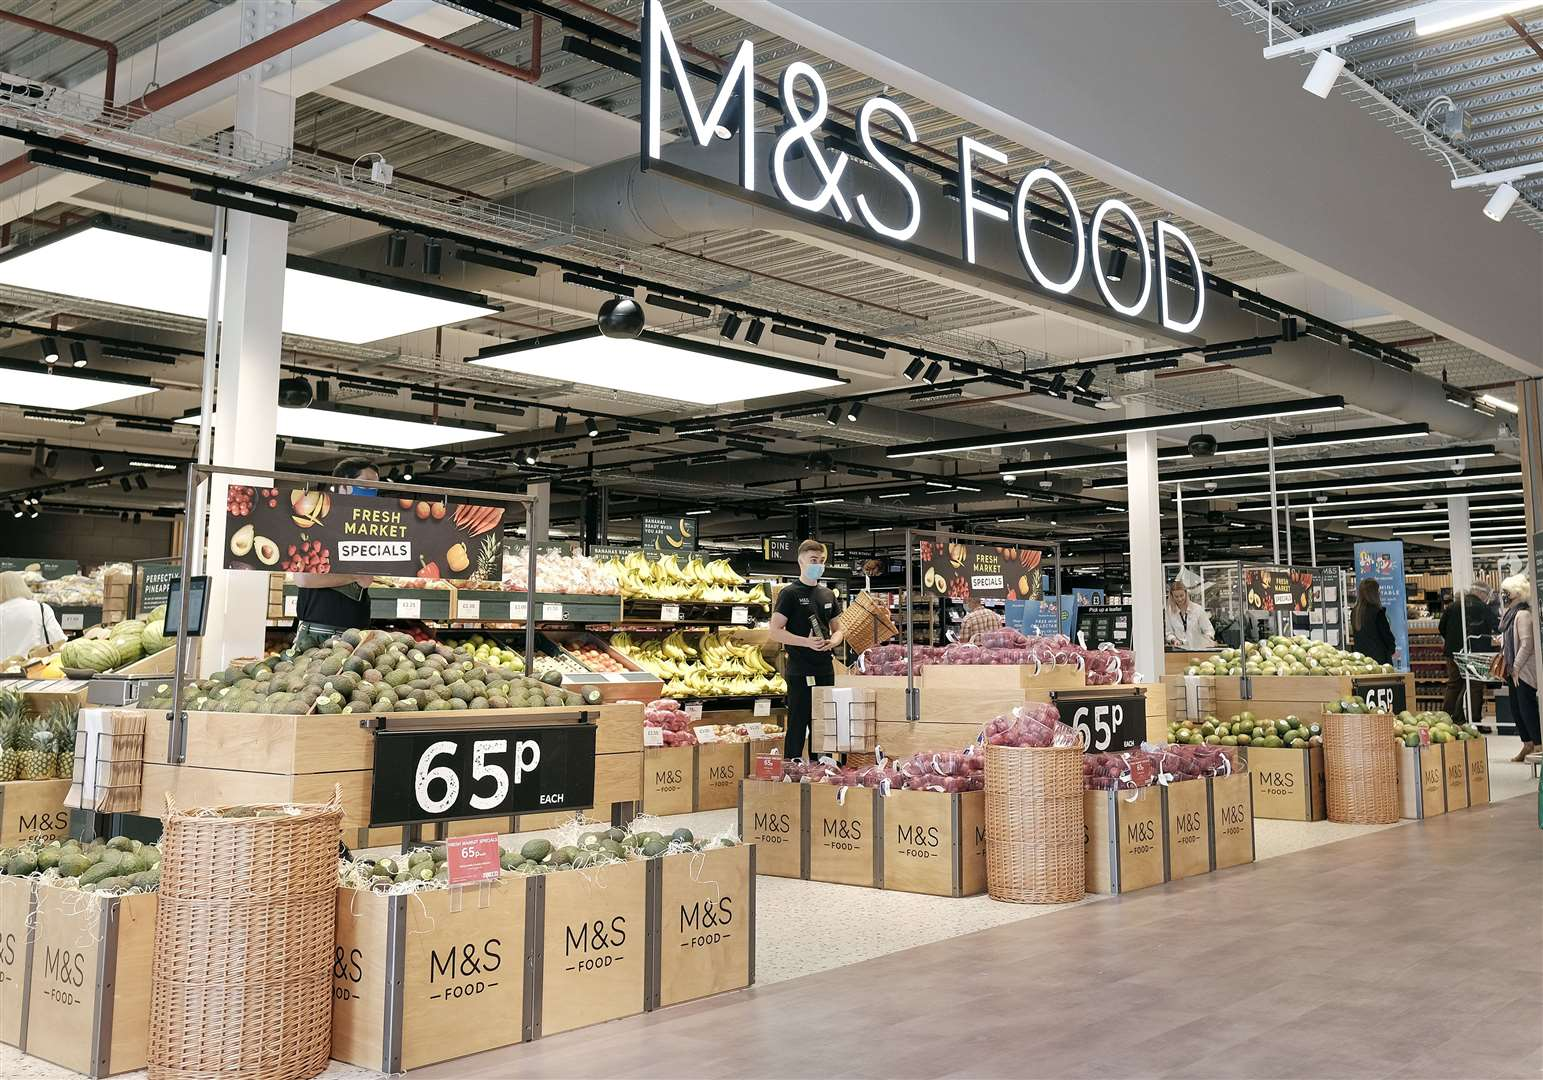 The Maidstone store is expected to look very similar to this new outlet in Nottingham